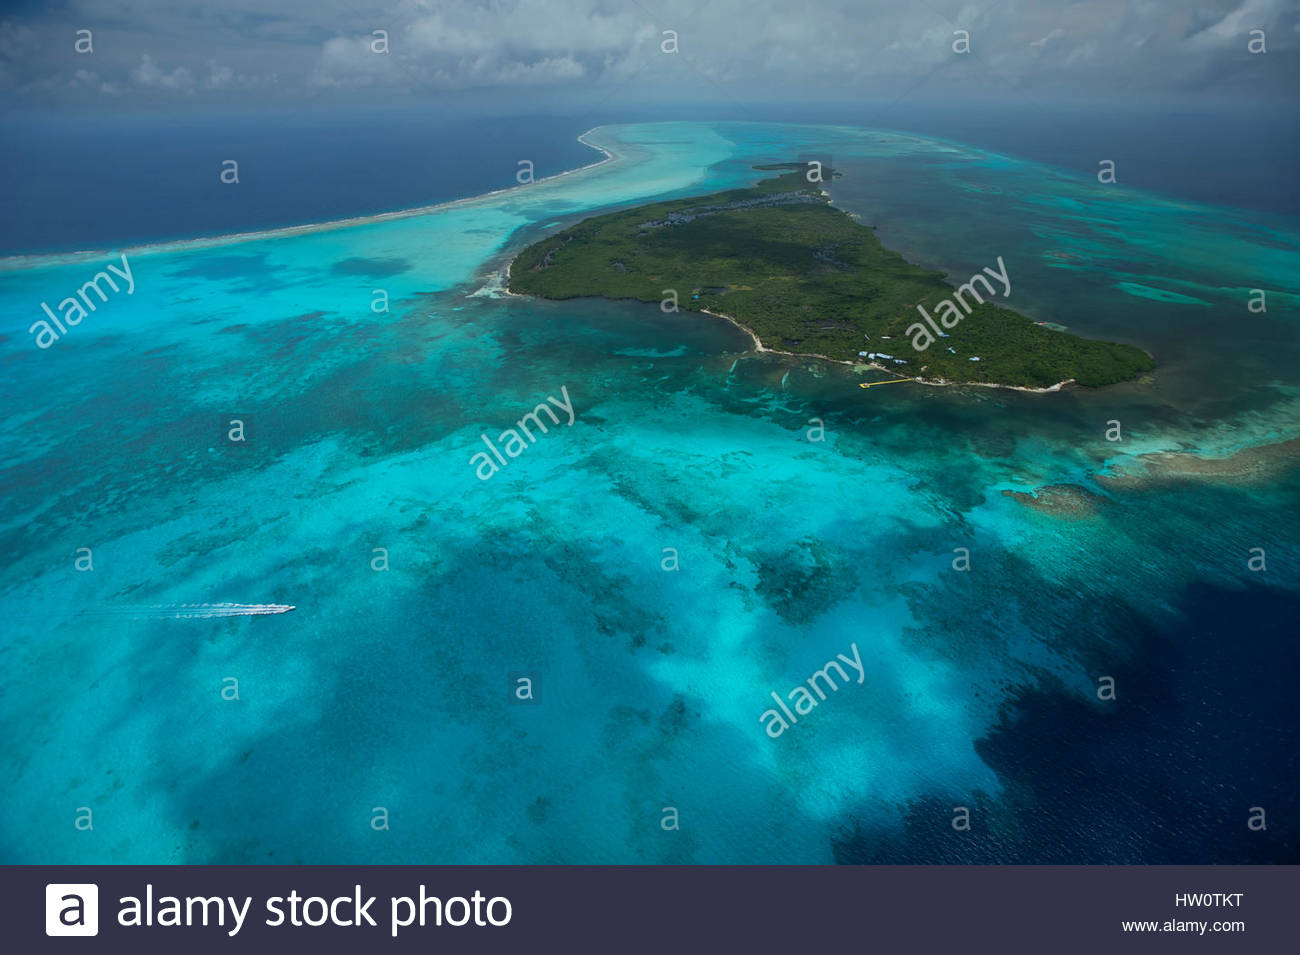 Half Moon Caye Natural Monument Half Moon Caye, The barrier reef at Half Moon Caye Natural Monument in the middle ...